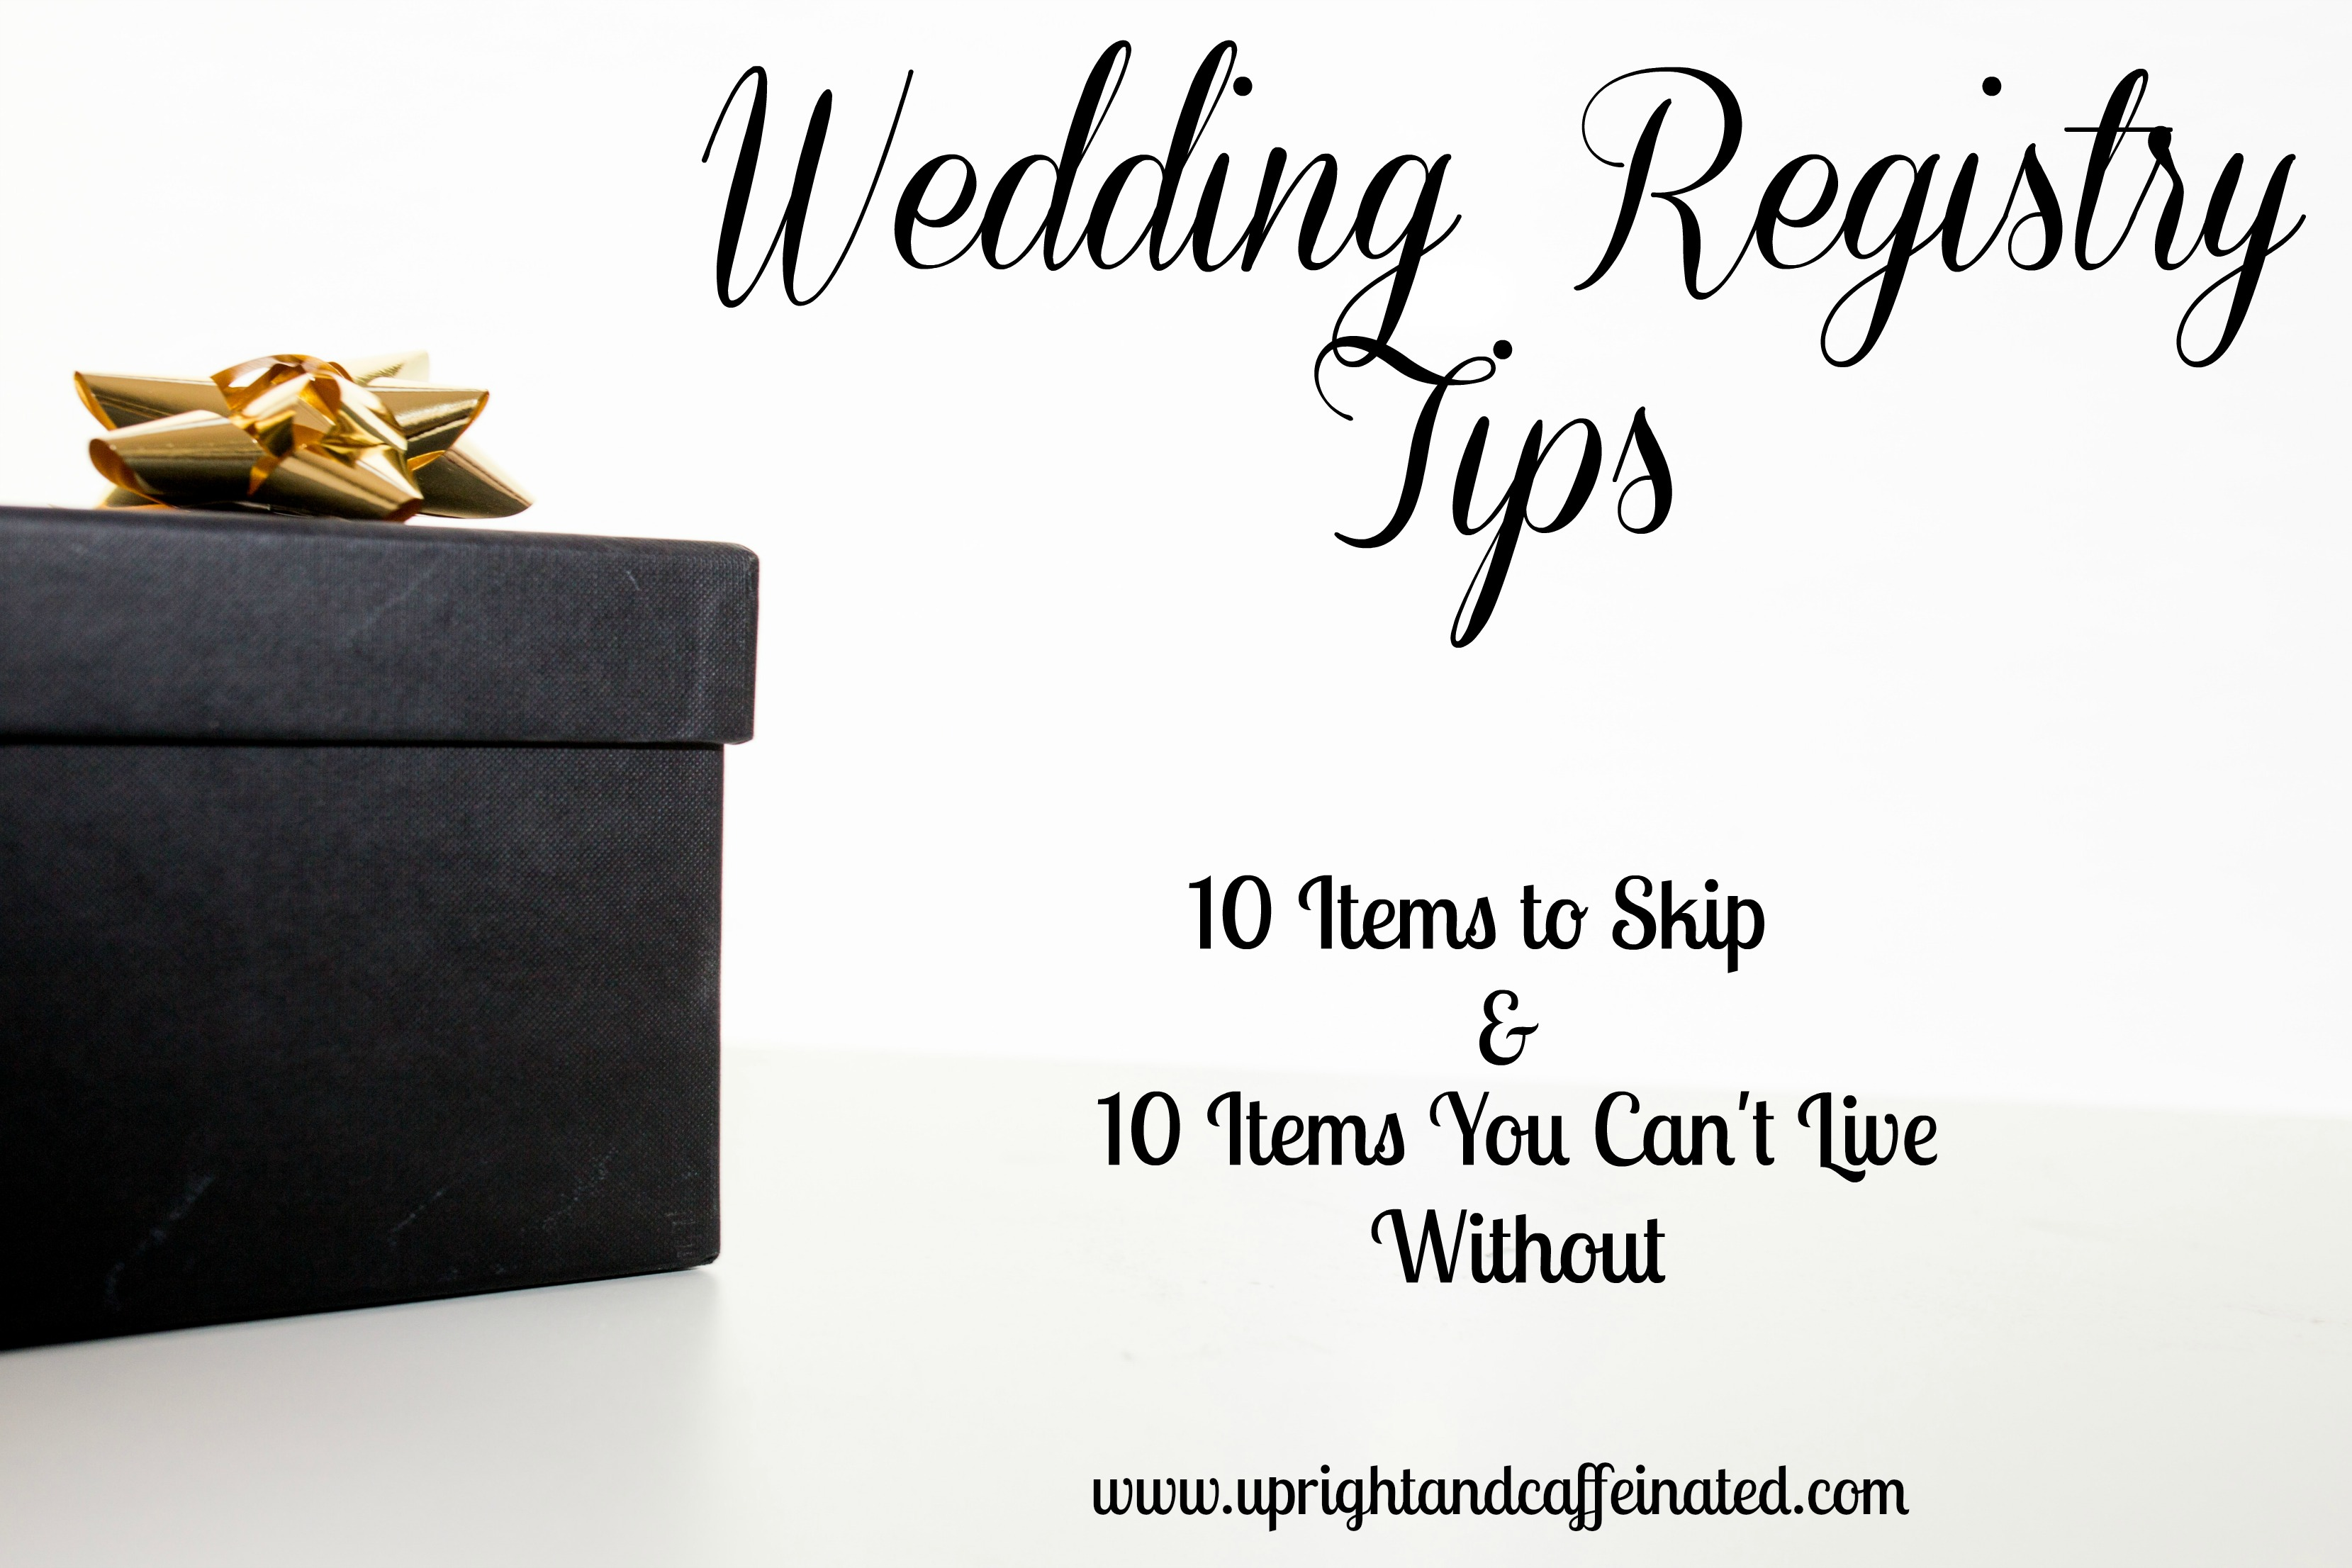 Wedding registry tips 10 items to skip upright and for Things to put on wedding registry